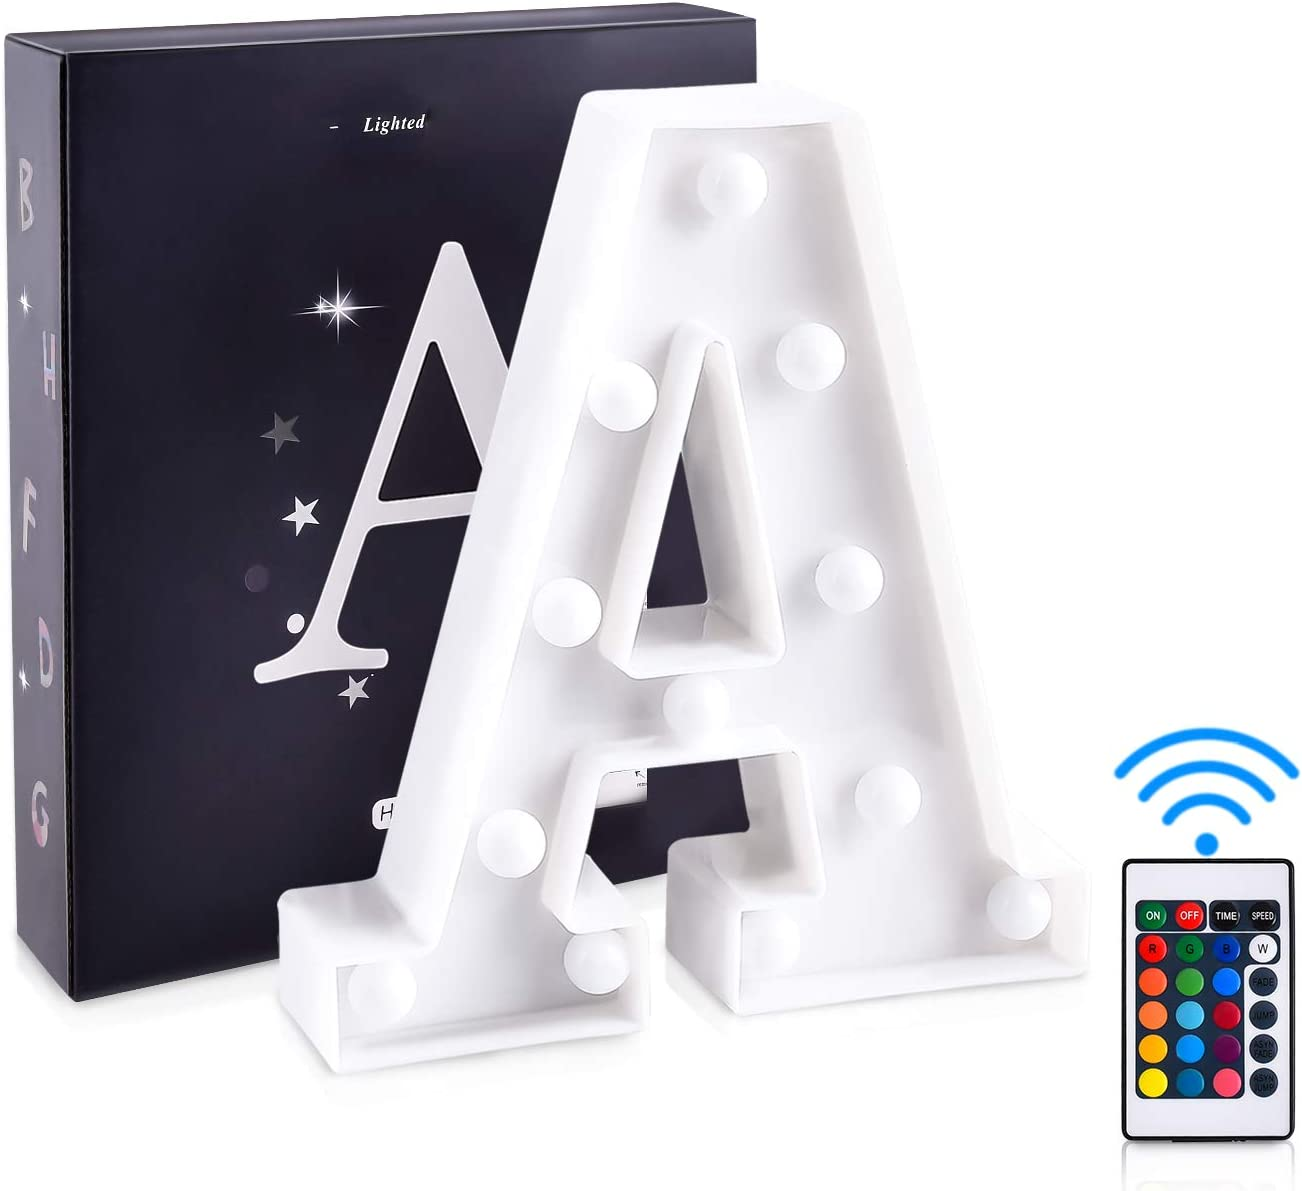 S ZRO LED Letter Lights 16 Colors-Changing 3D Night Lamp 26 Alphabet A-Z LED Marquee Sign with Remote Control for New Year Eve Valentines Day Home Decor Birthday Party Wedding Bedroom Wall Decor